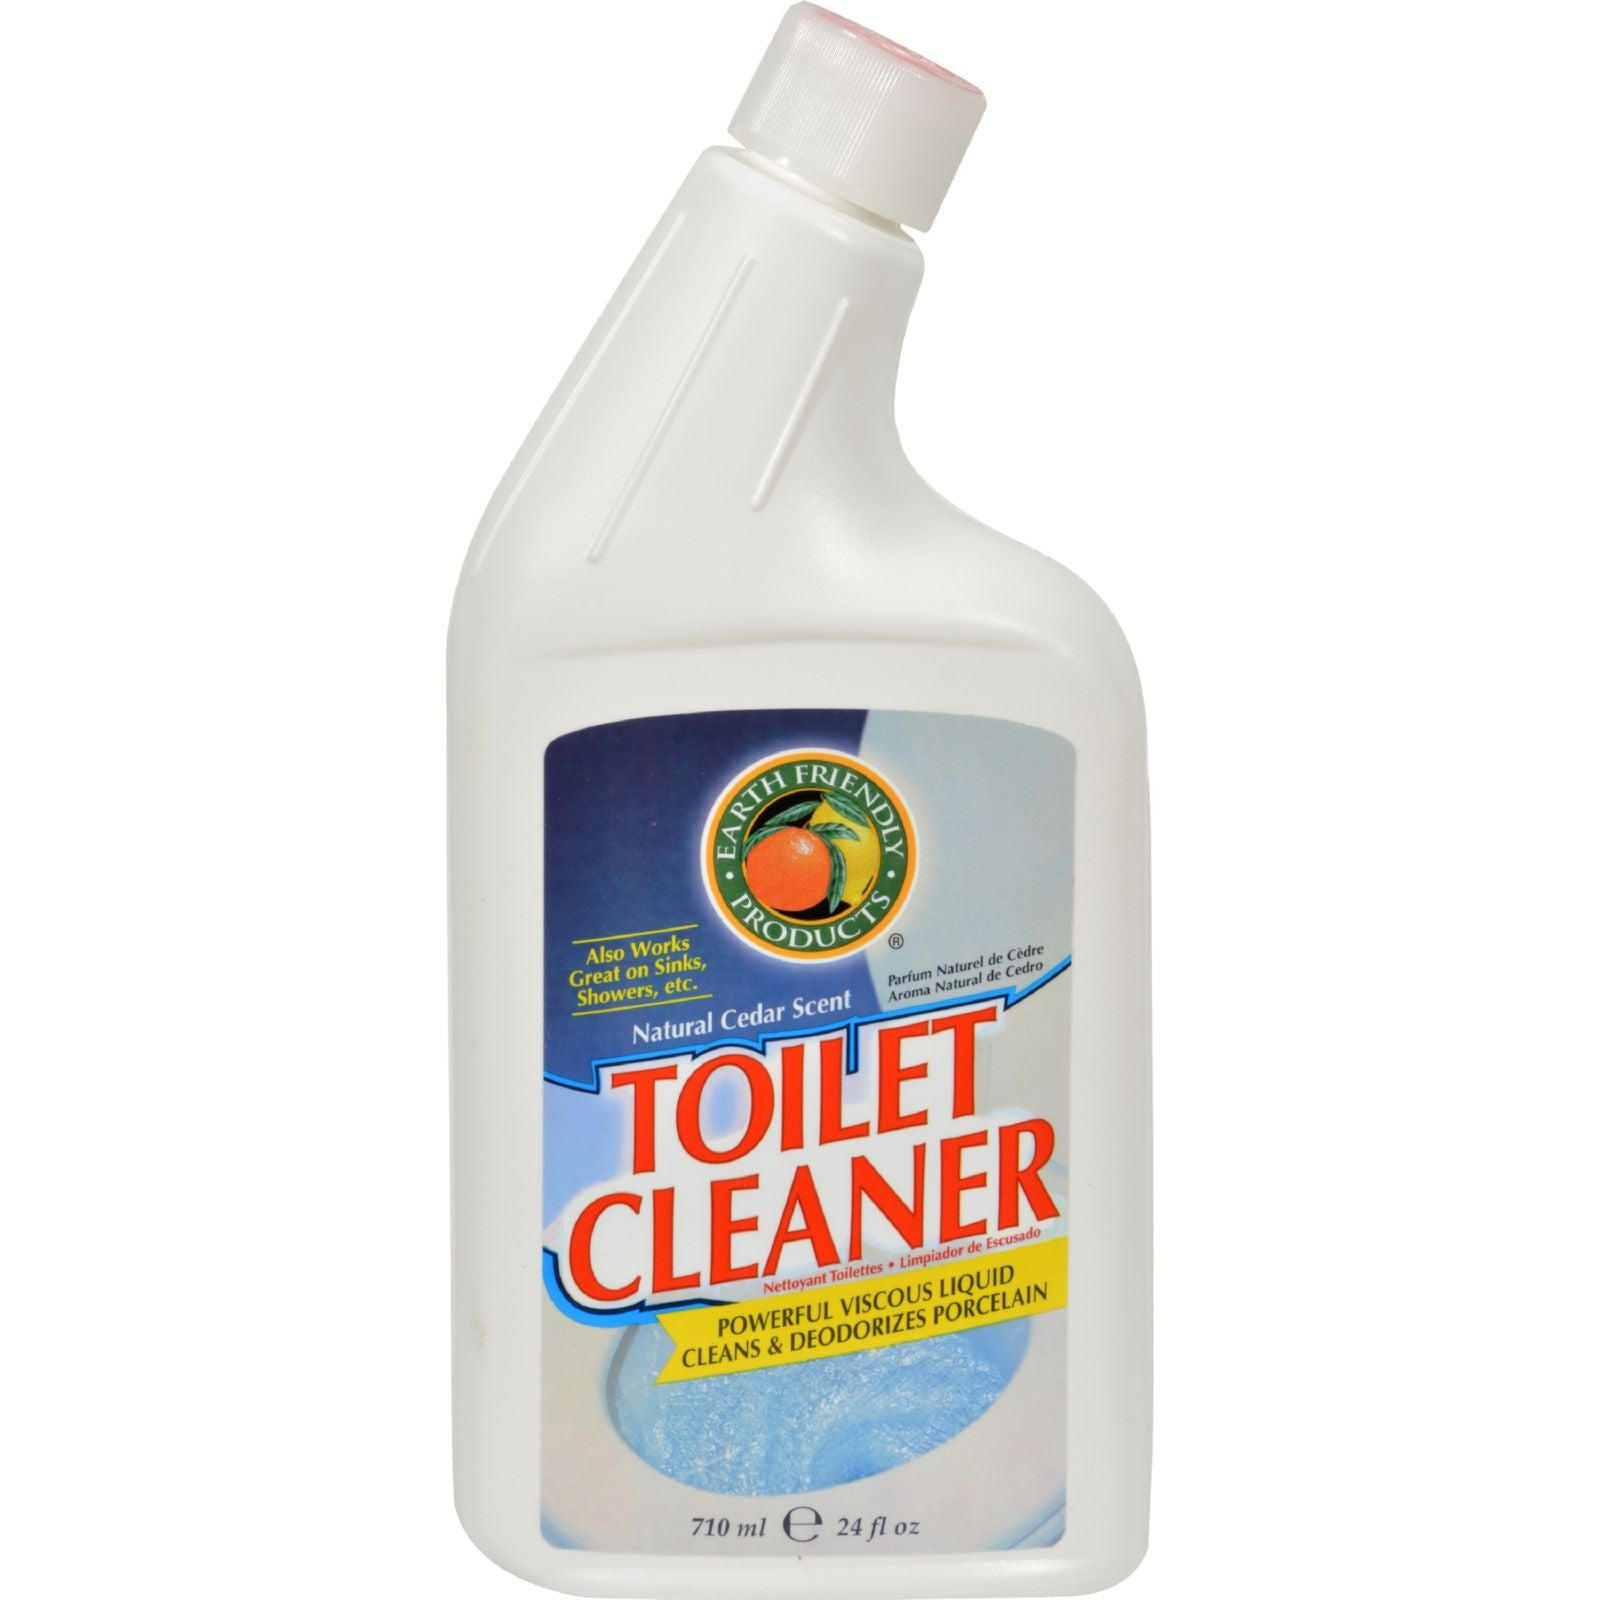 Earth Friendly Toilet Cleaner, 710 ml.-NaturesWisdom